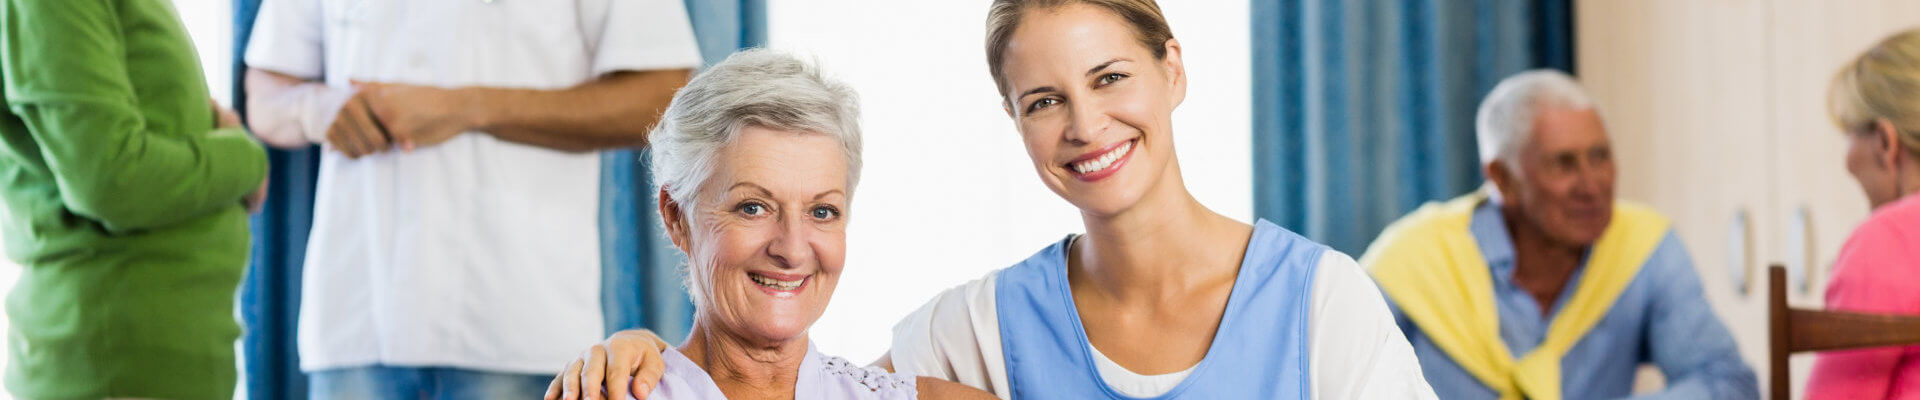 caregiver and the senior woman smiling